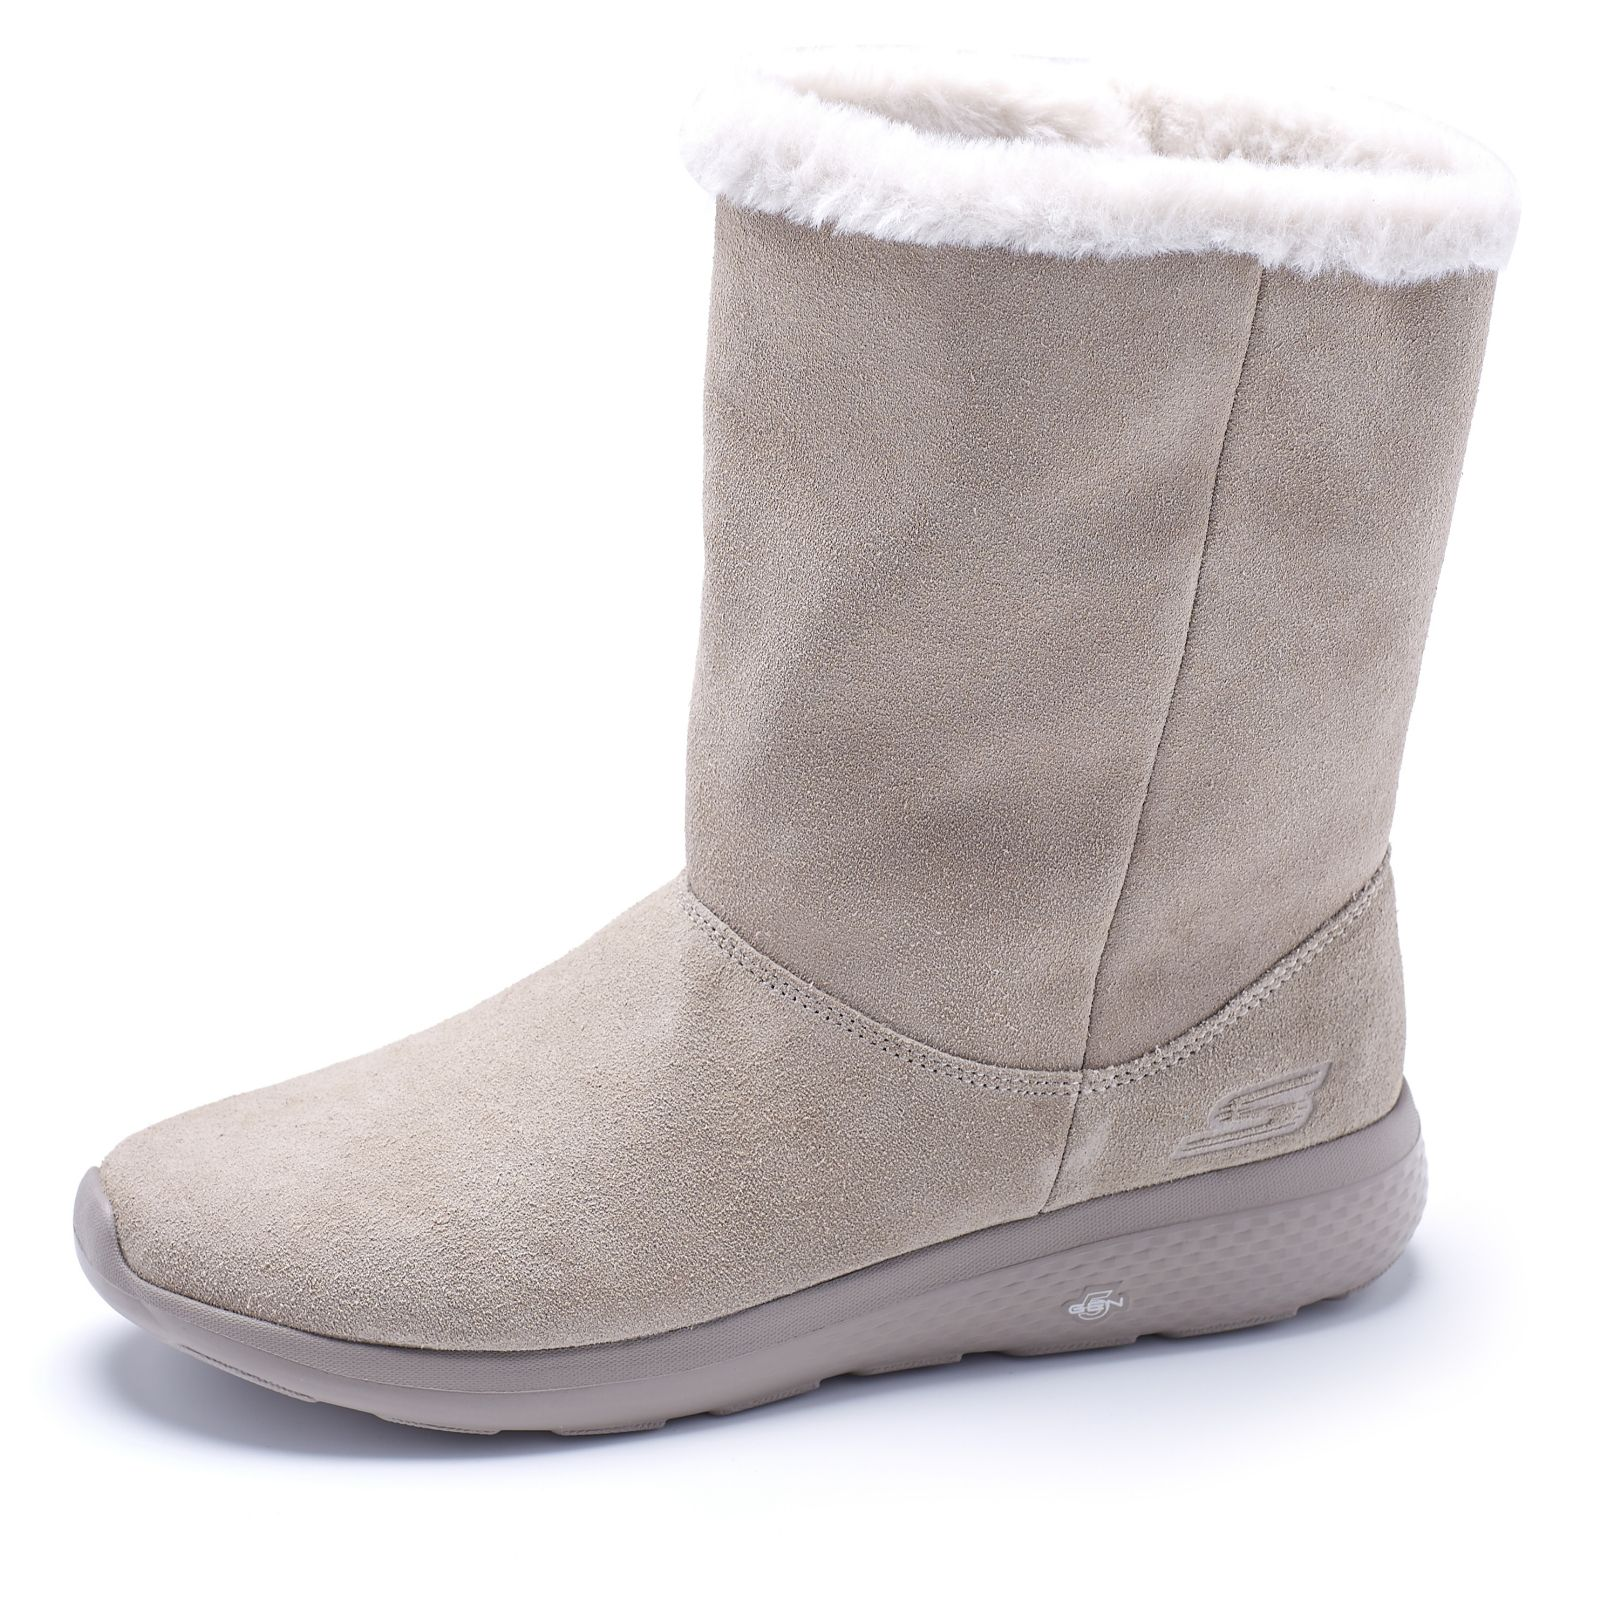 Skechers On the GO City 2 Suede Mid Calf Boot with Faux Fur Lining QVC UK